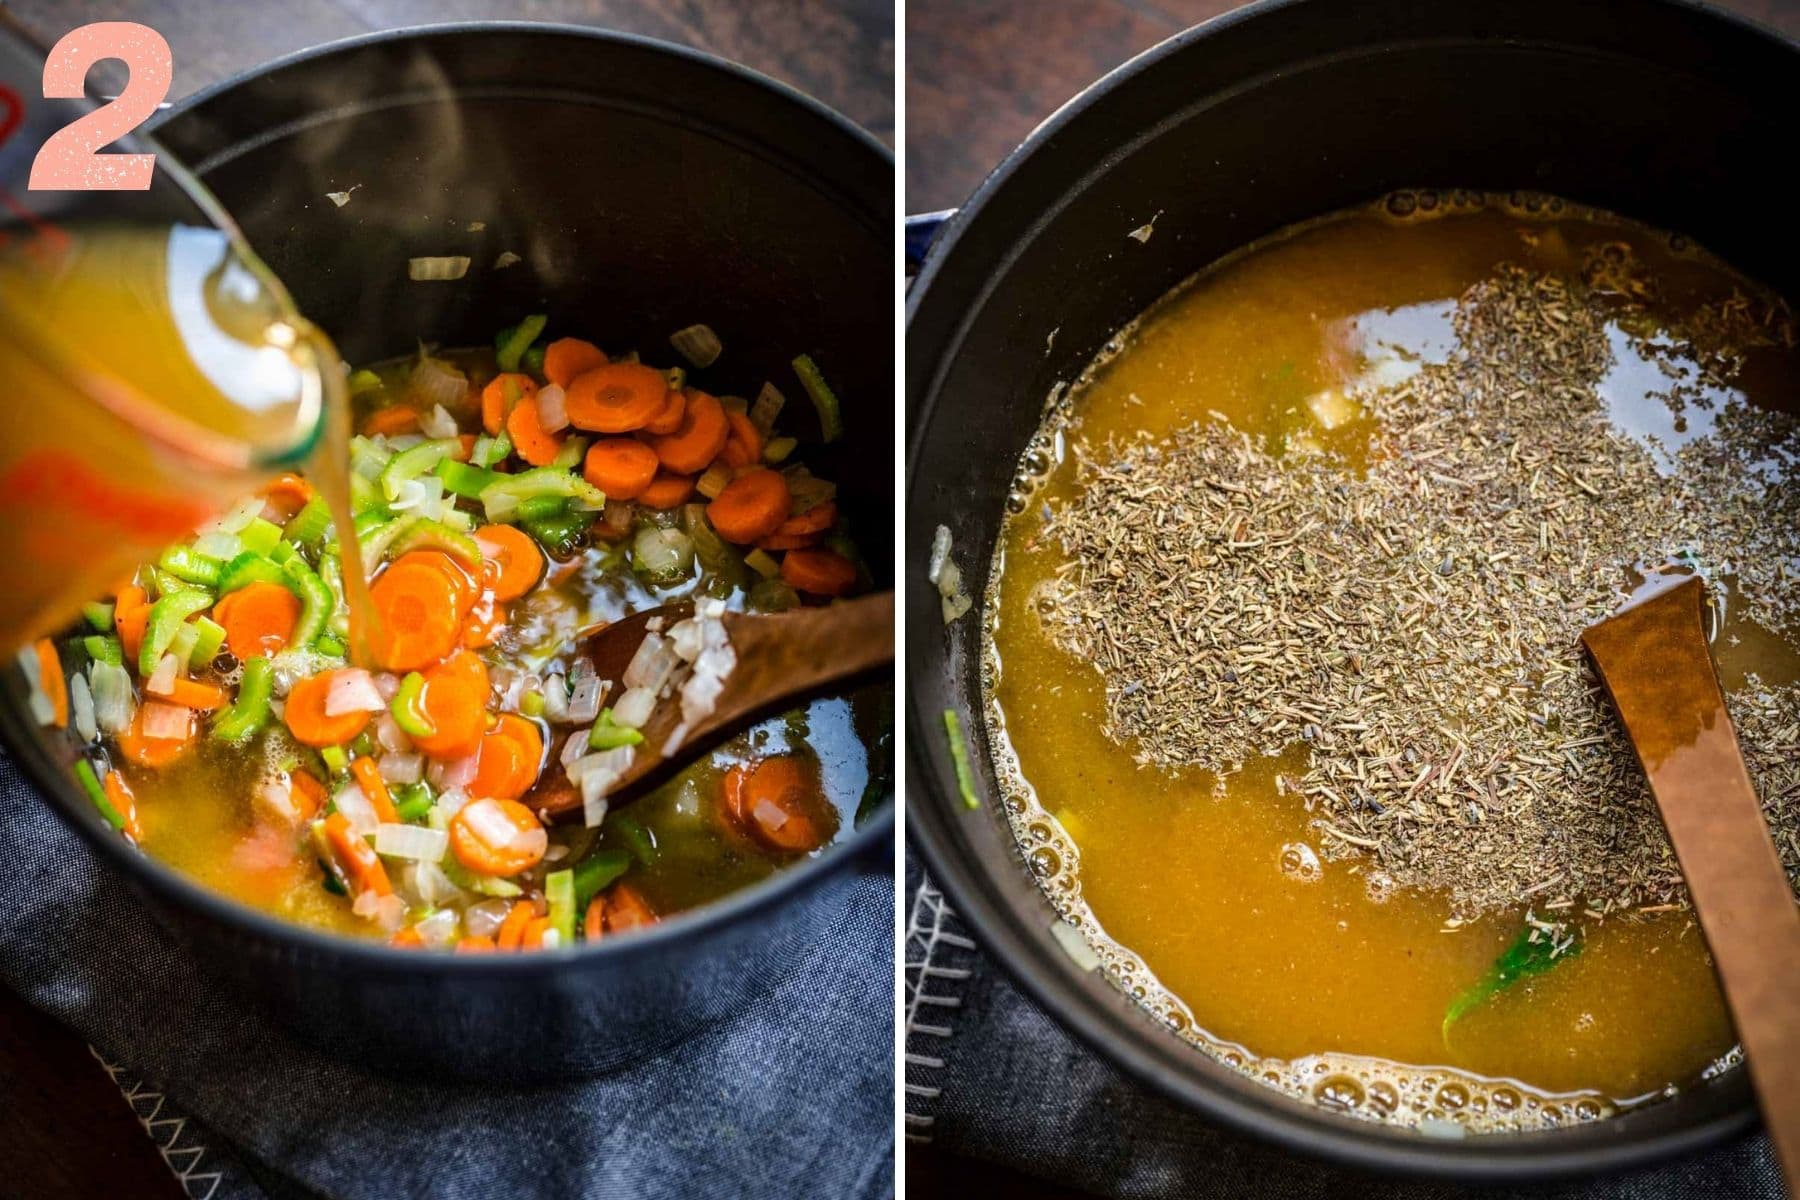 On the left: vegetable broth being added to the pot. On the right: herbes de provence added to soup.